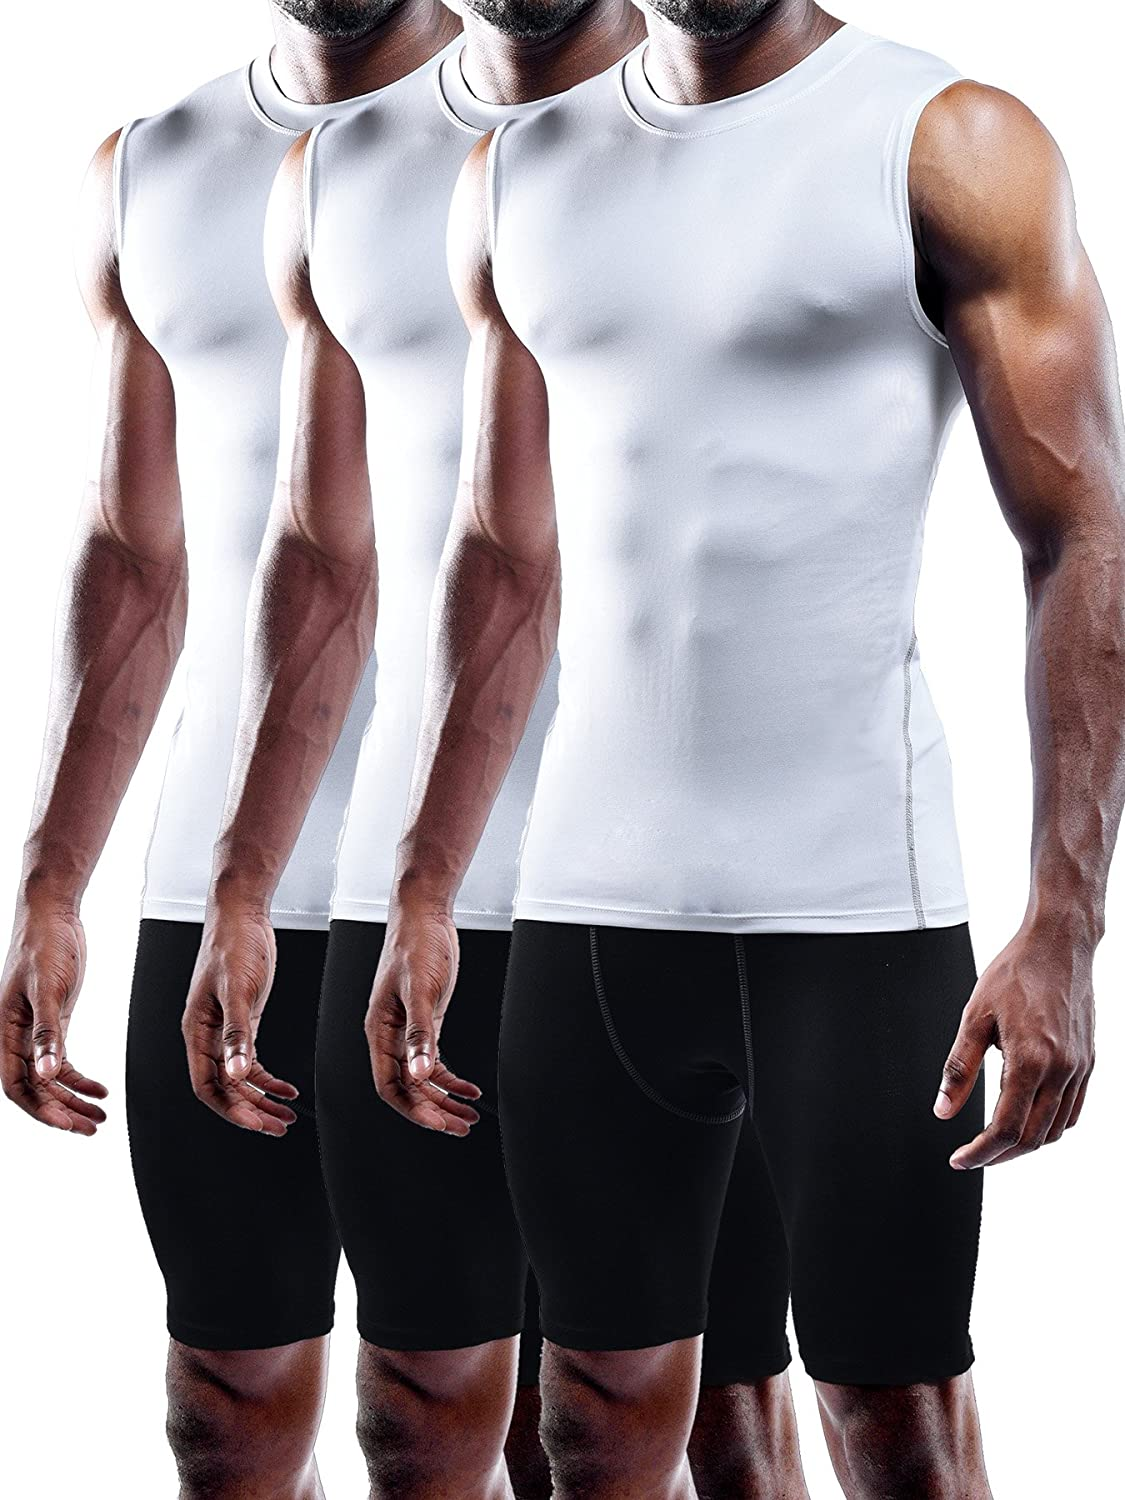 Neleus Men's 3 Pack Compression Athletic Muscle Sleeveless Tank Top NDT0002